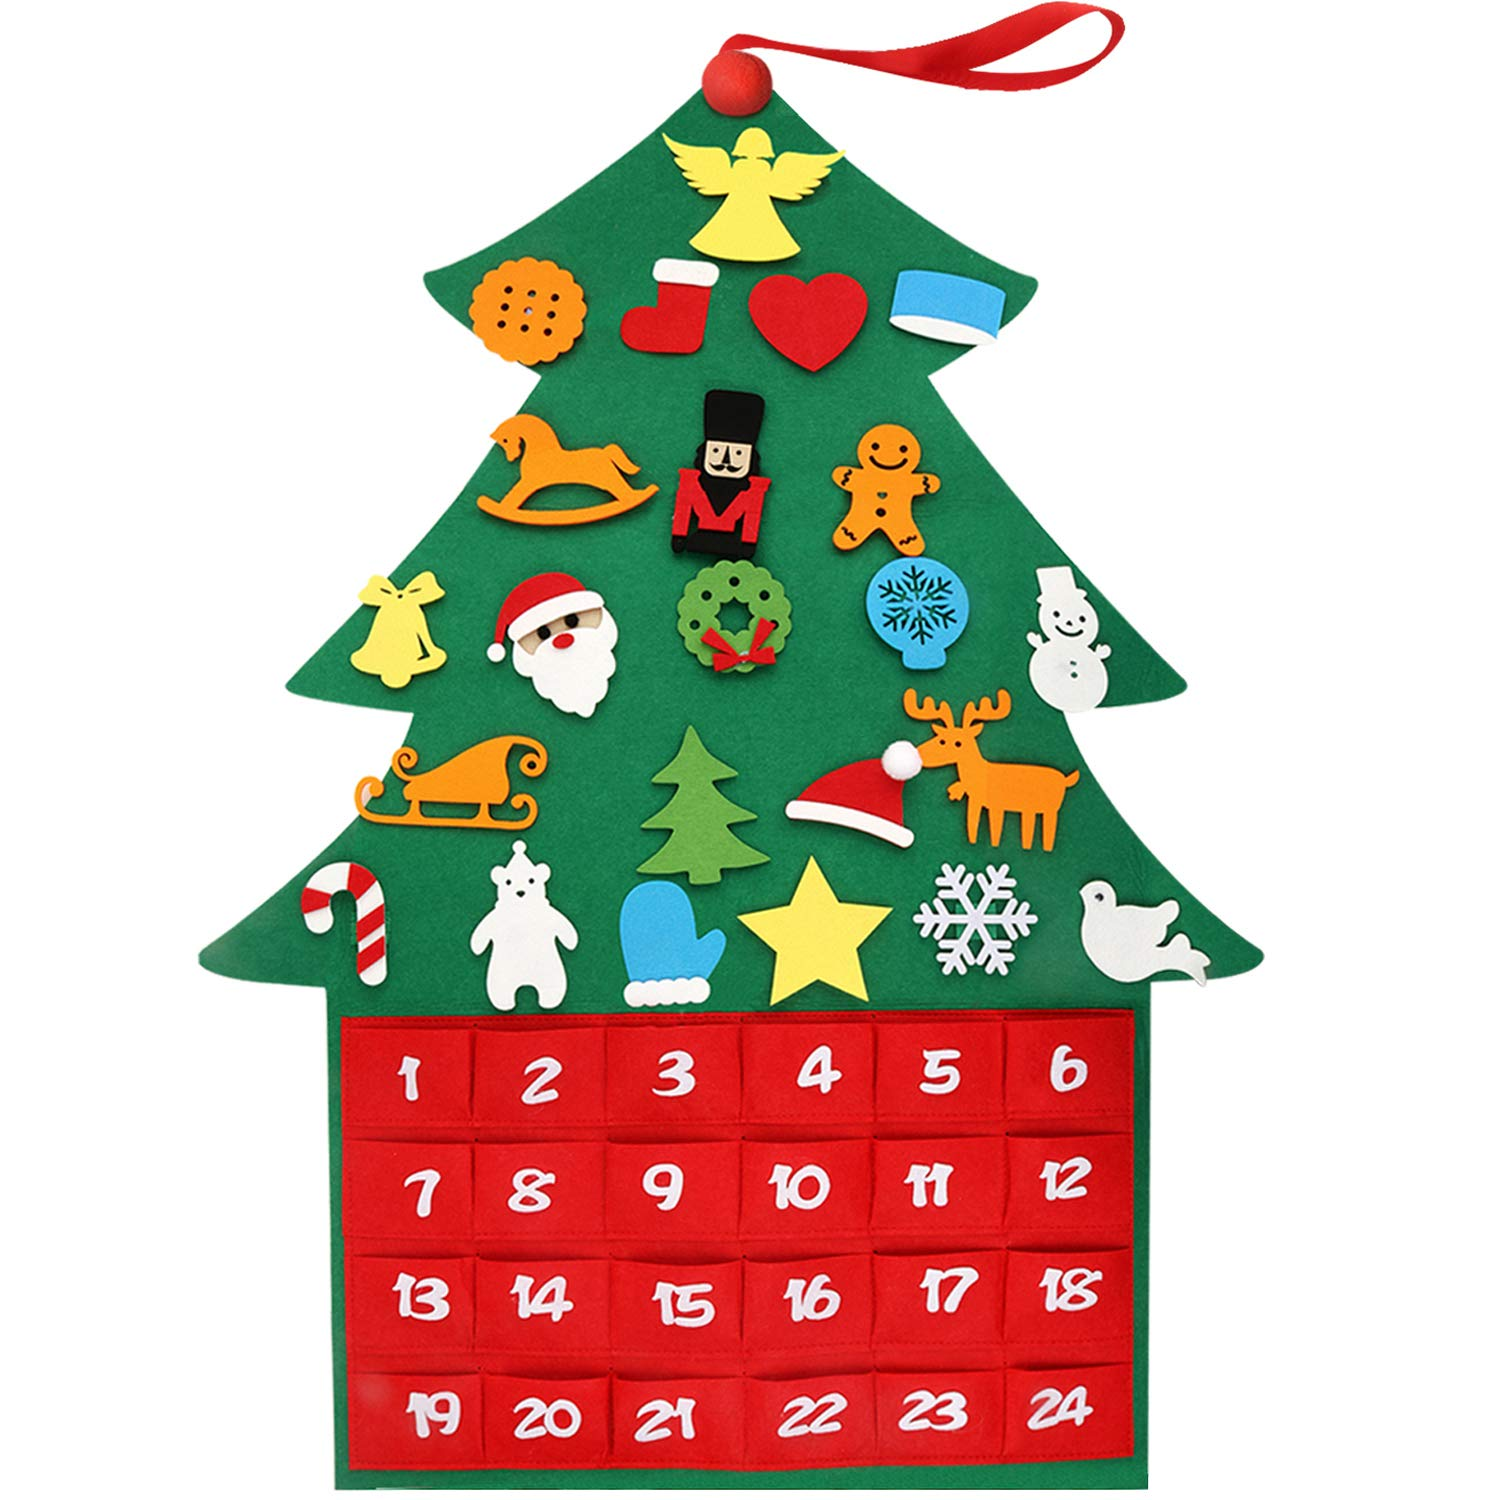 Henscoqi 2018 Newest Felt Christmas Tree Ornaments Advent Calendar Set, DIY Xmas Countdown Decorations Wall Door Hanging Gift for Kids